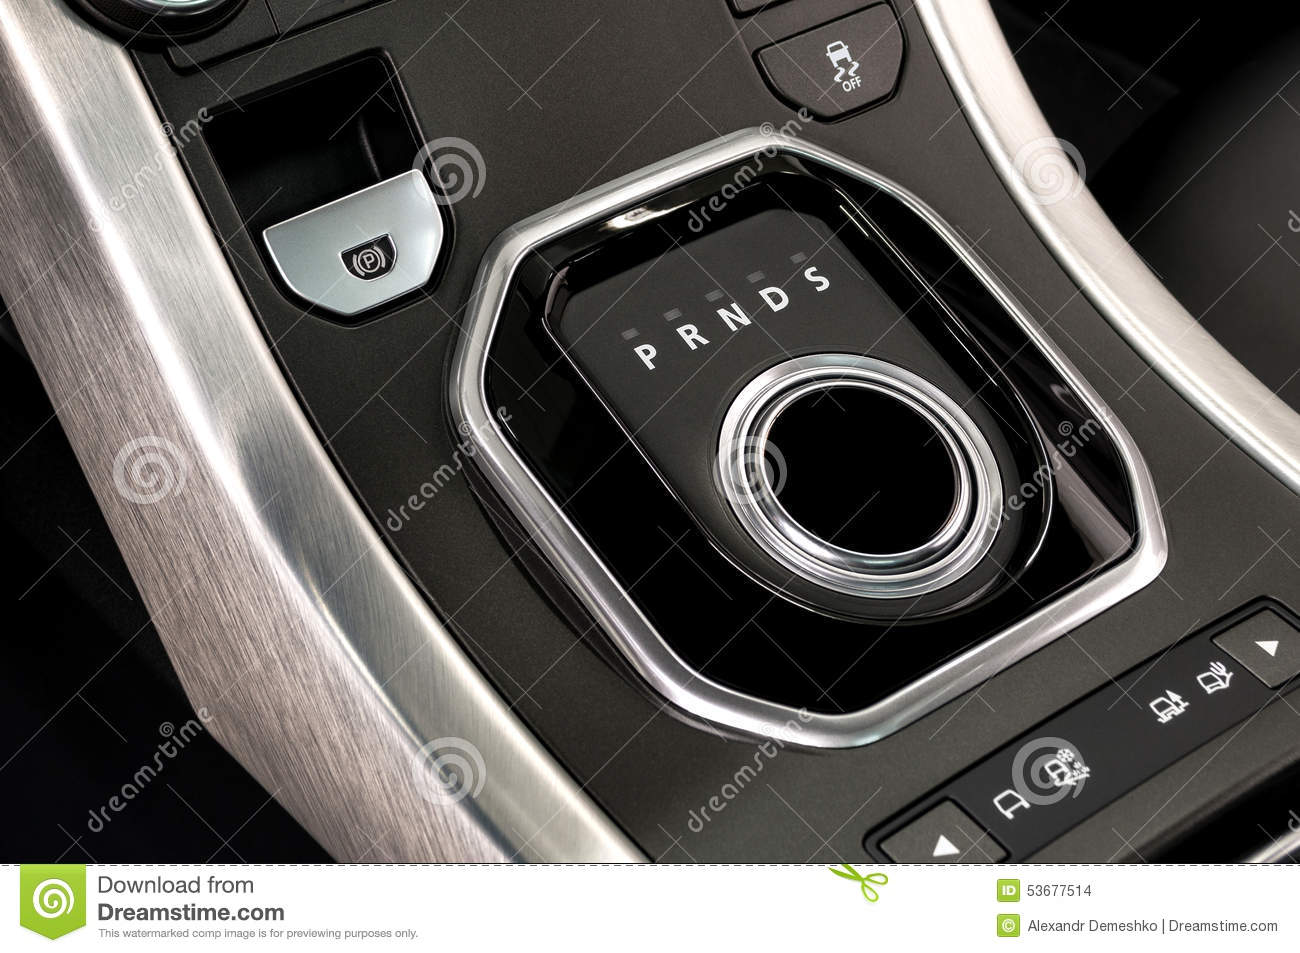 car automatic transmission and parking brake button stock photo image of brake electronic. Black Bedroom Furniture Sets. Home Design Ideas